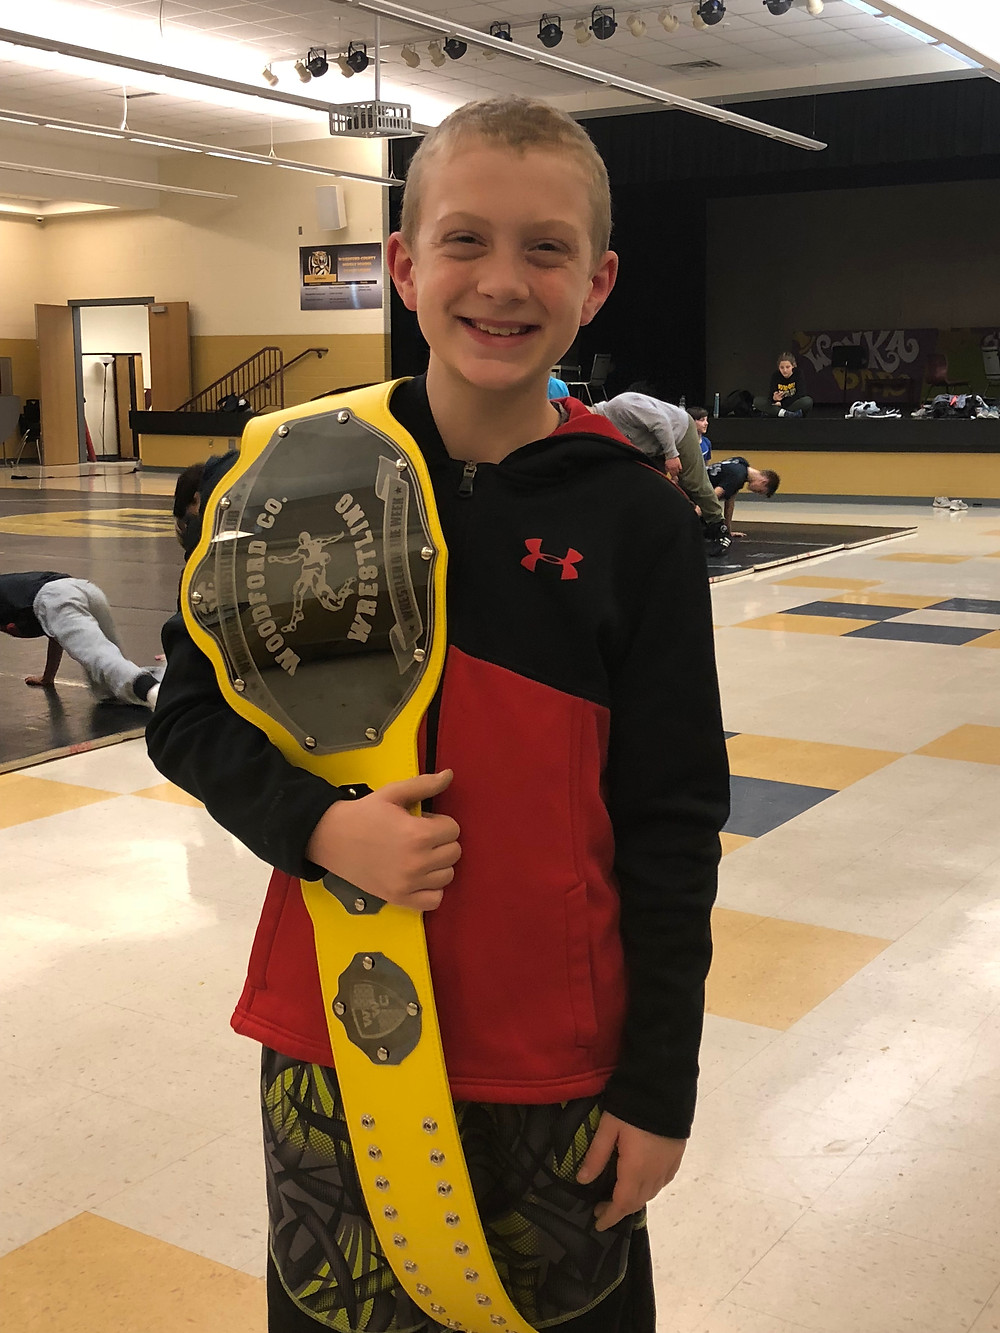 ELIAS TACKETT was named the Woodford Wrestling Club's Wrestler of the Week for his performance at the Anderson County meet. (Photo submitted)